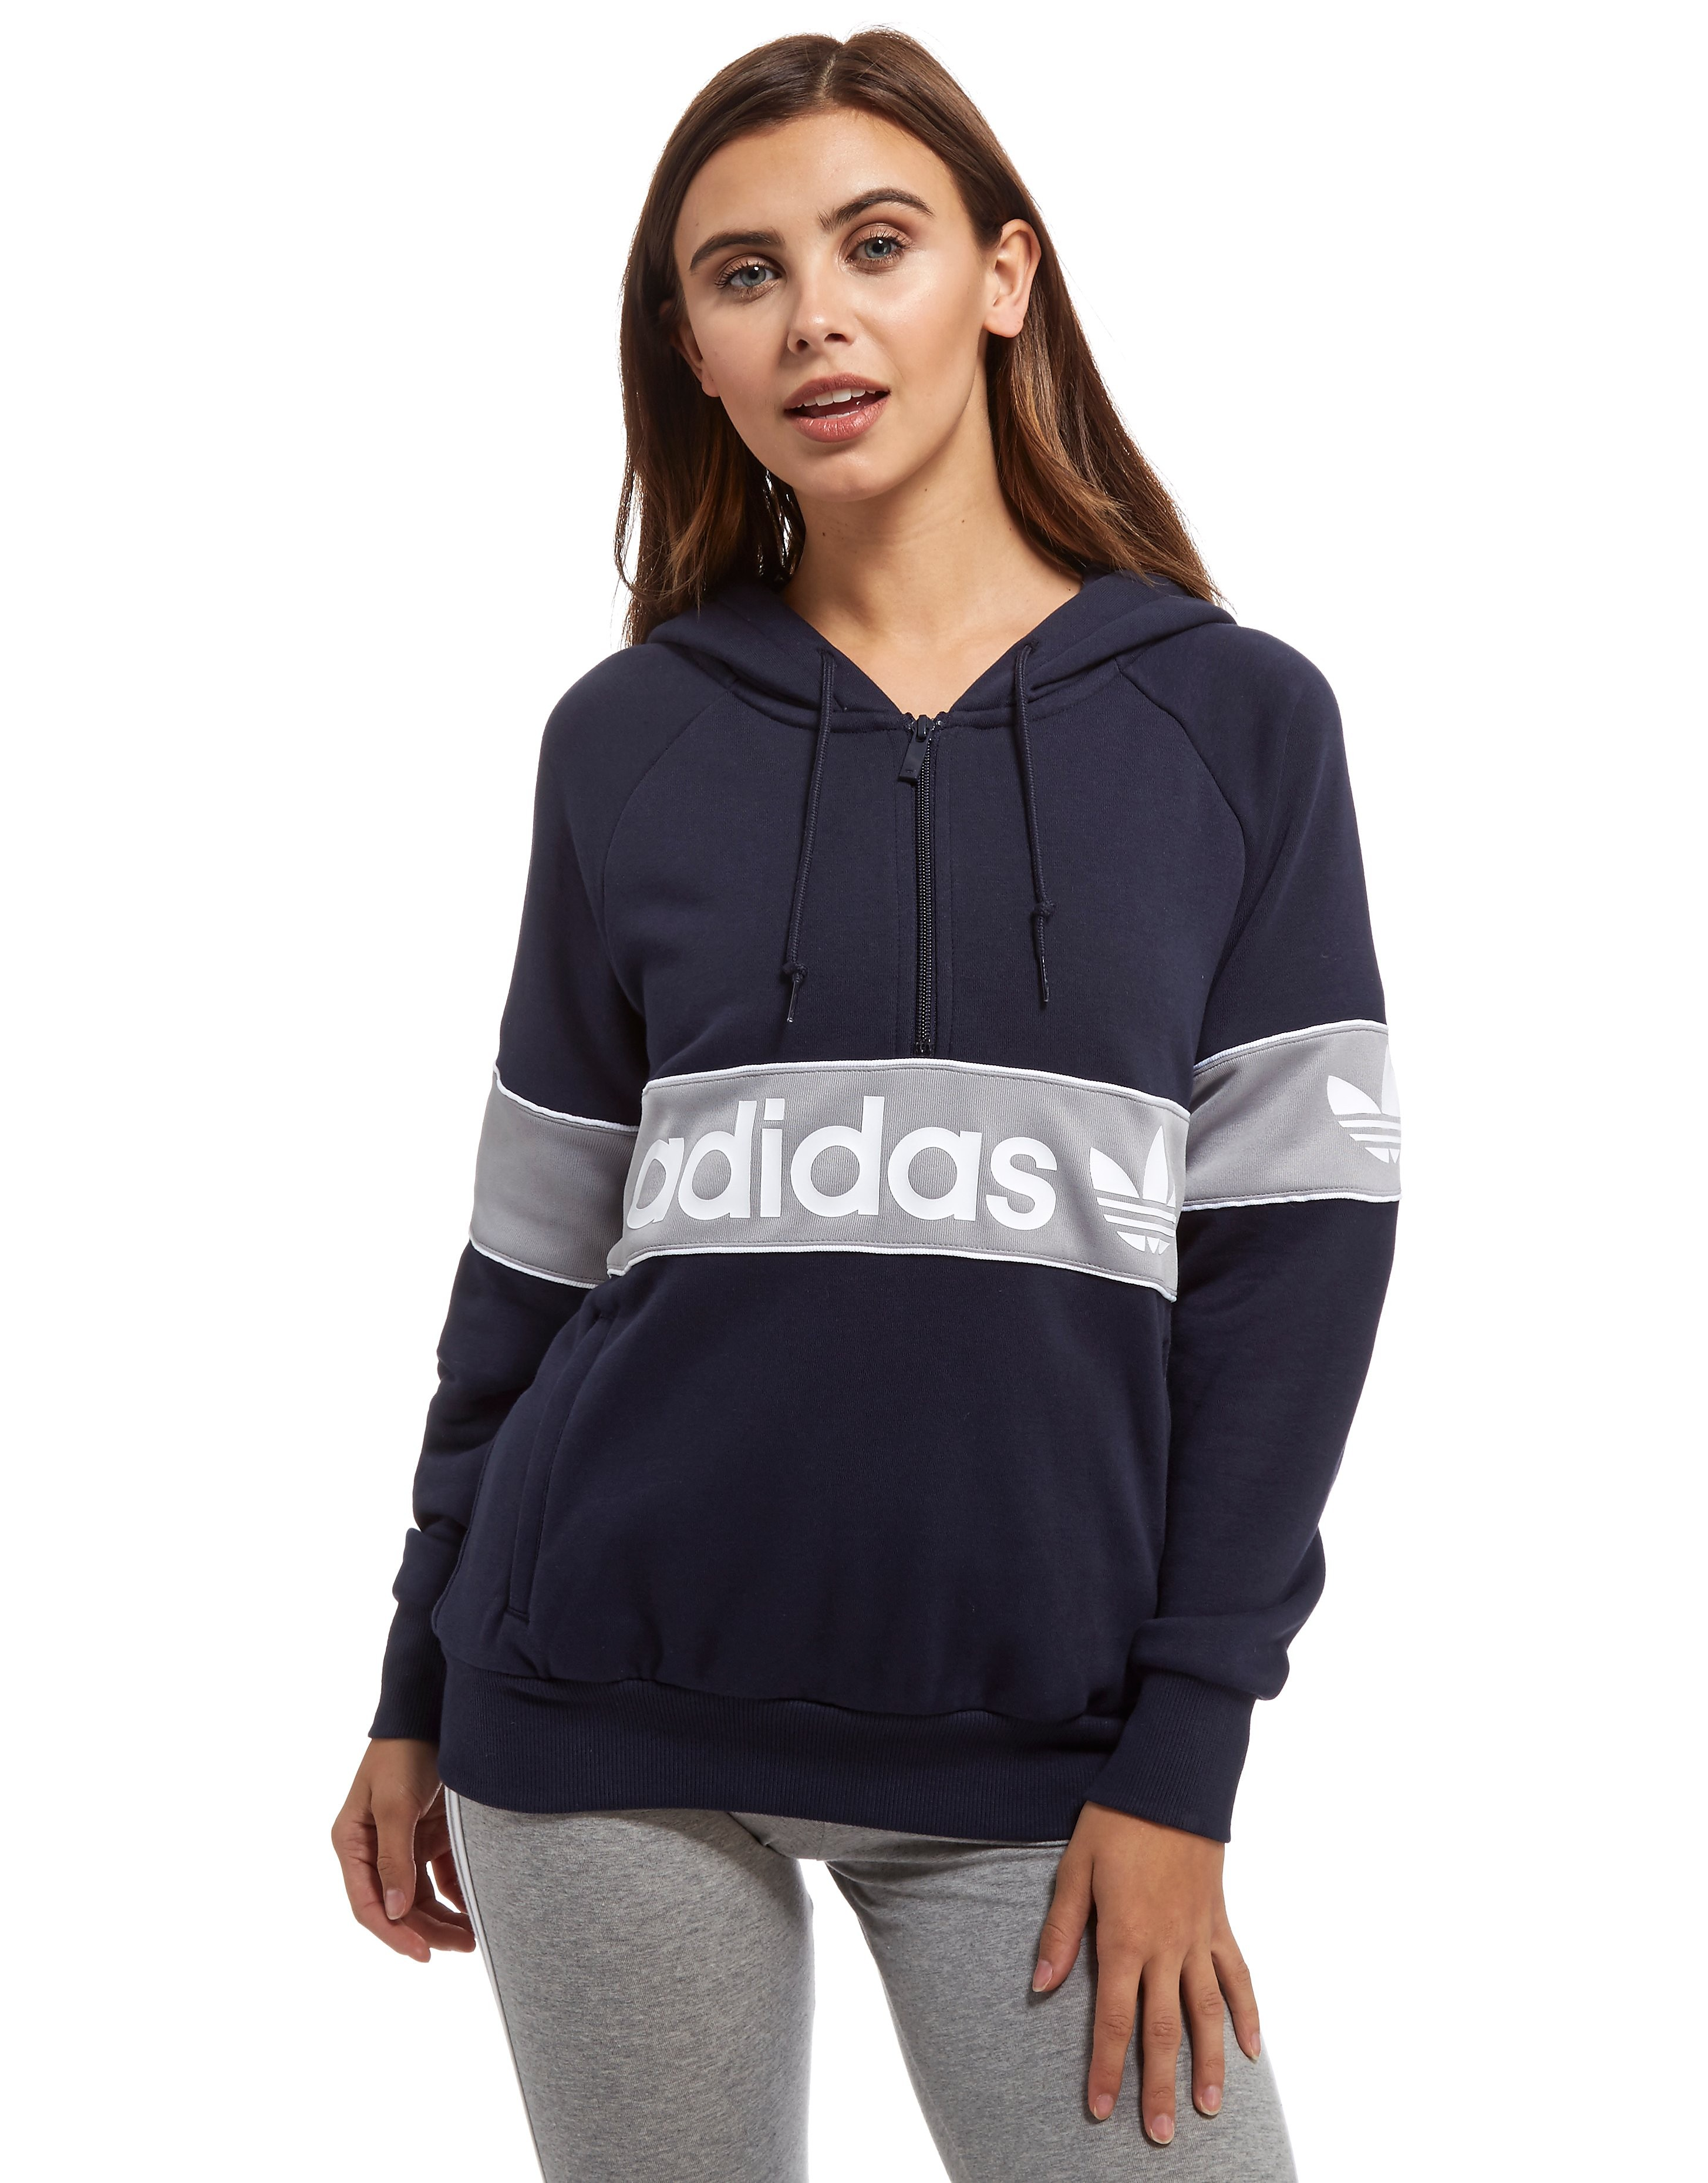 adidas Originals Sweat à Capuche Authentic Femme - Only at JD - Navy/Grey, Navy/Grey